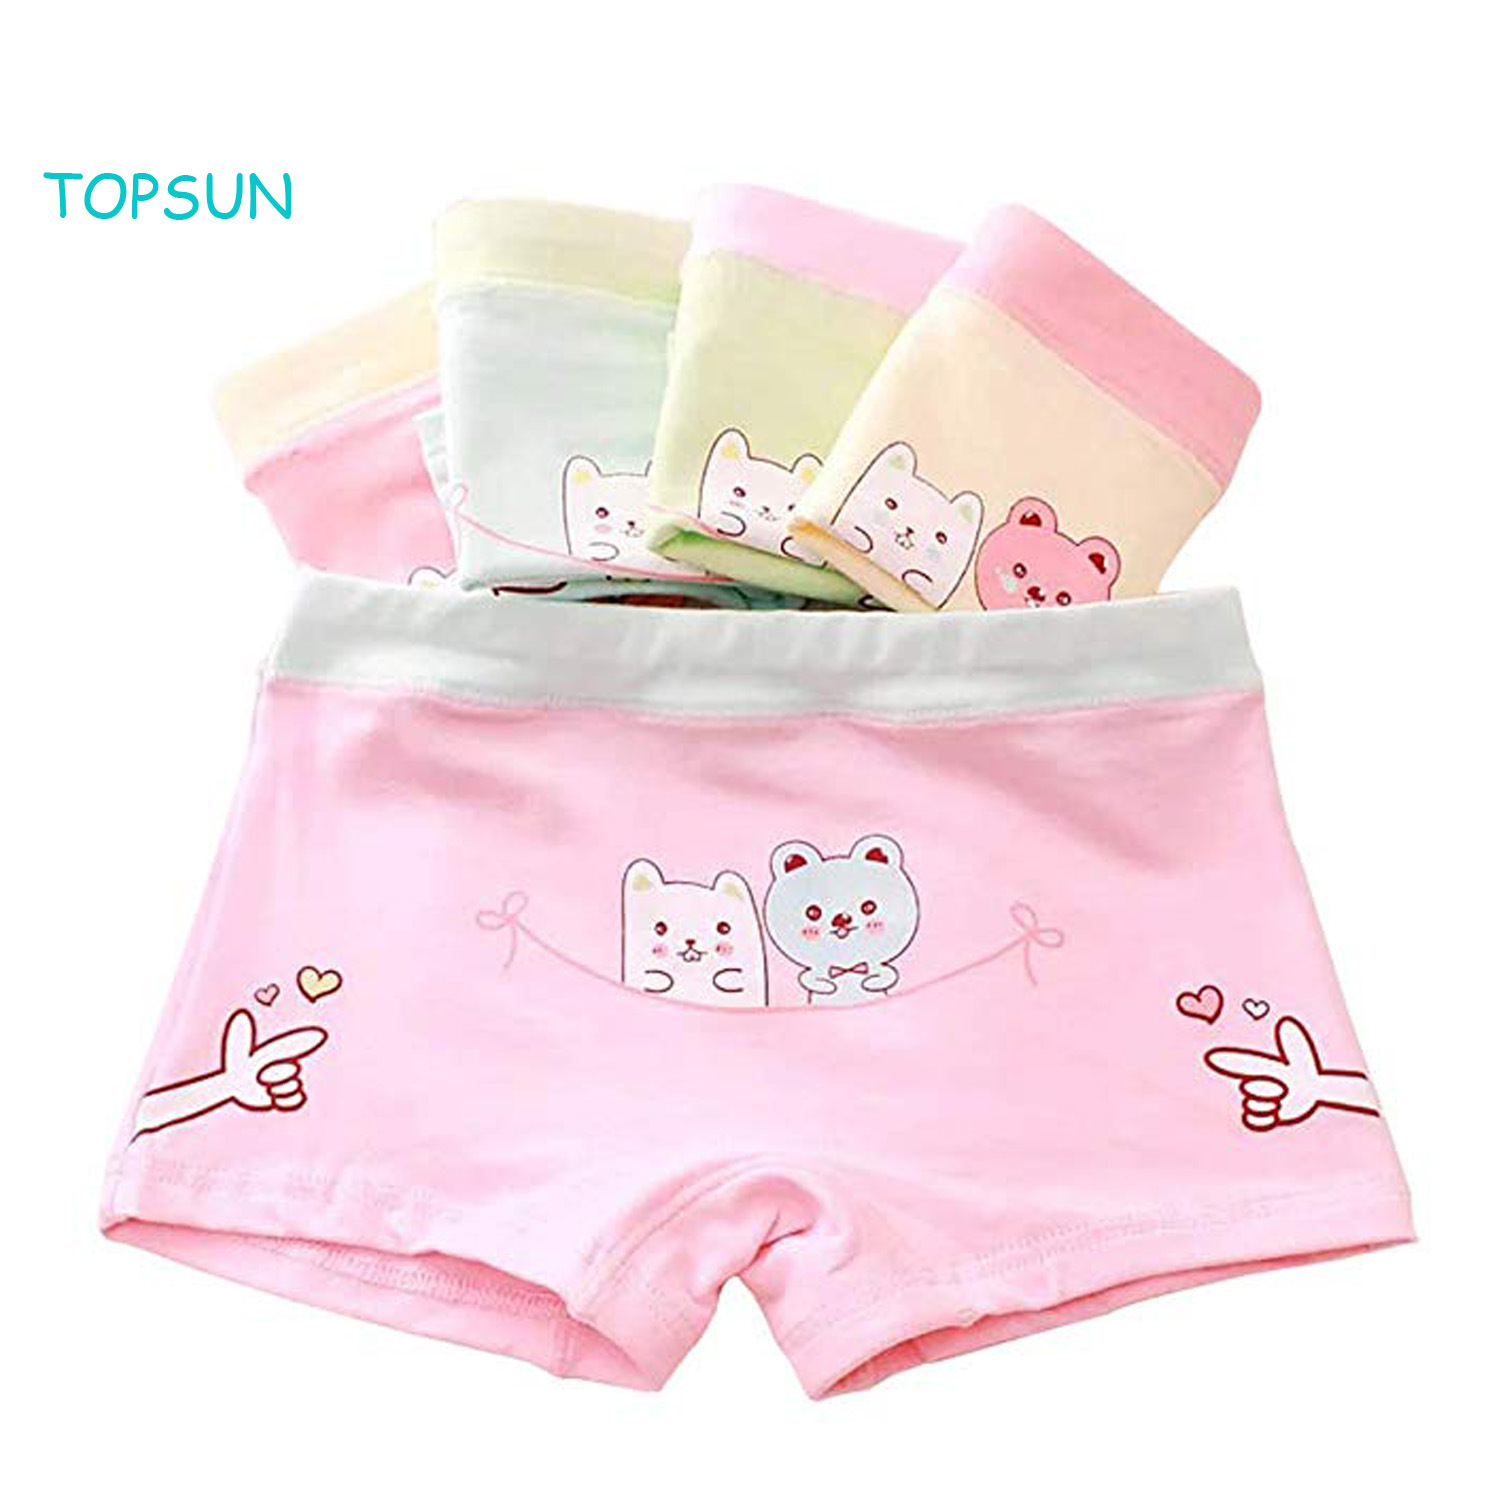 Girls Cotton Underwear Soft Boy Shorts Baby Boxer Briefs Panties (Pack of 5) pictures & photos